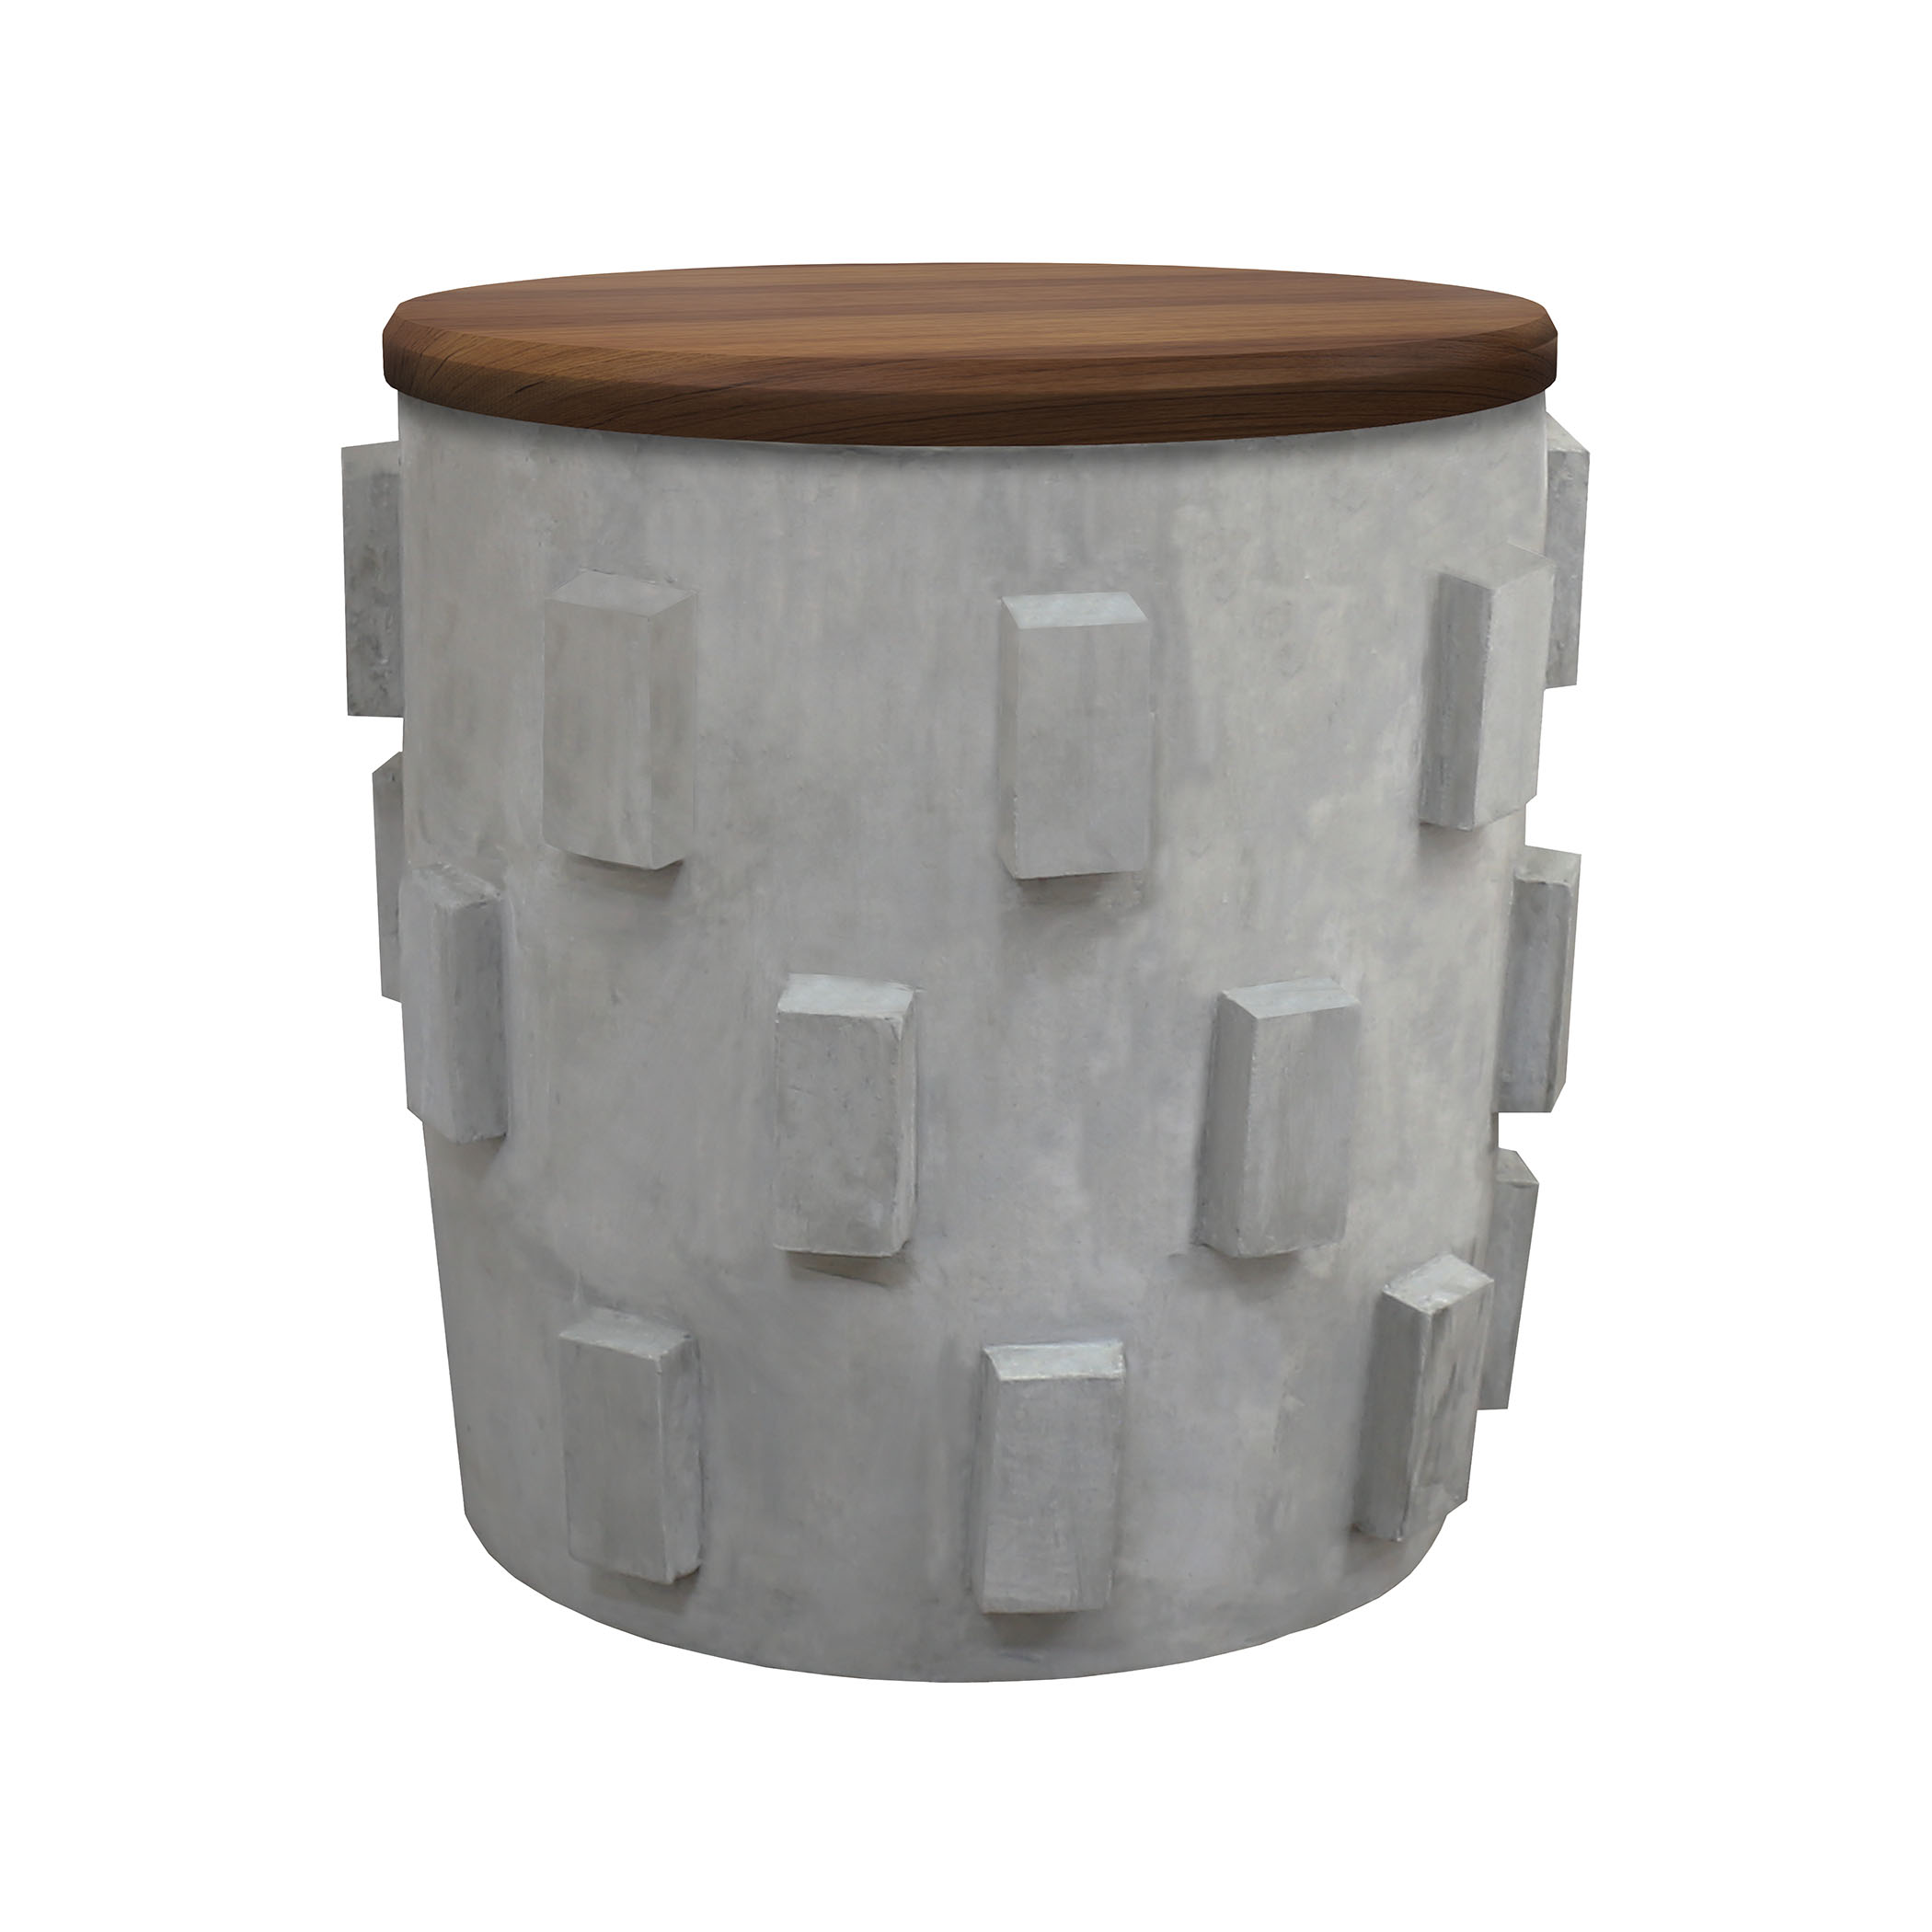 Lifestyle Concrete Stool Or Accent Table with Storage Under Natural Wood Top | Elk Home